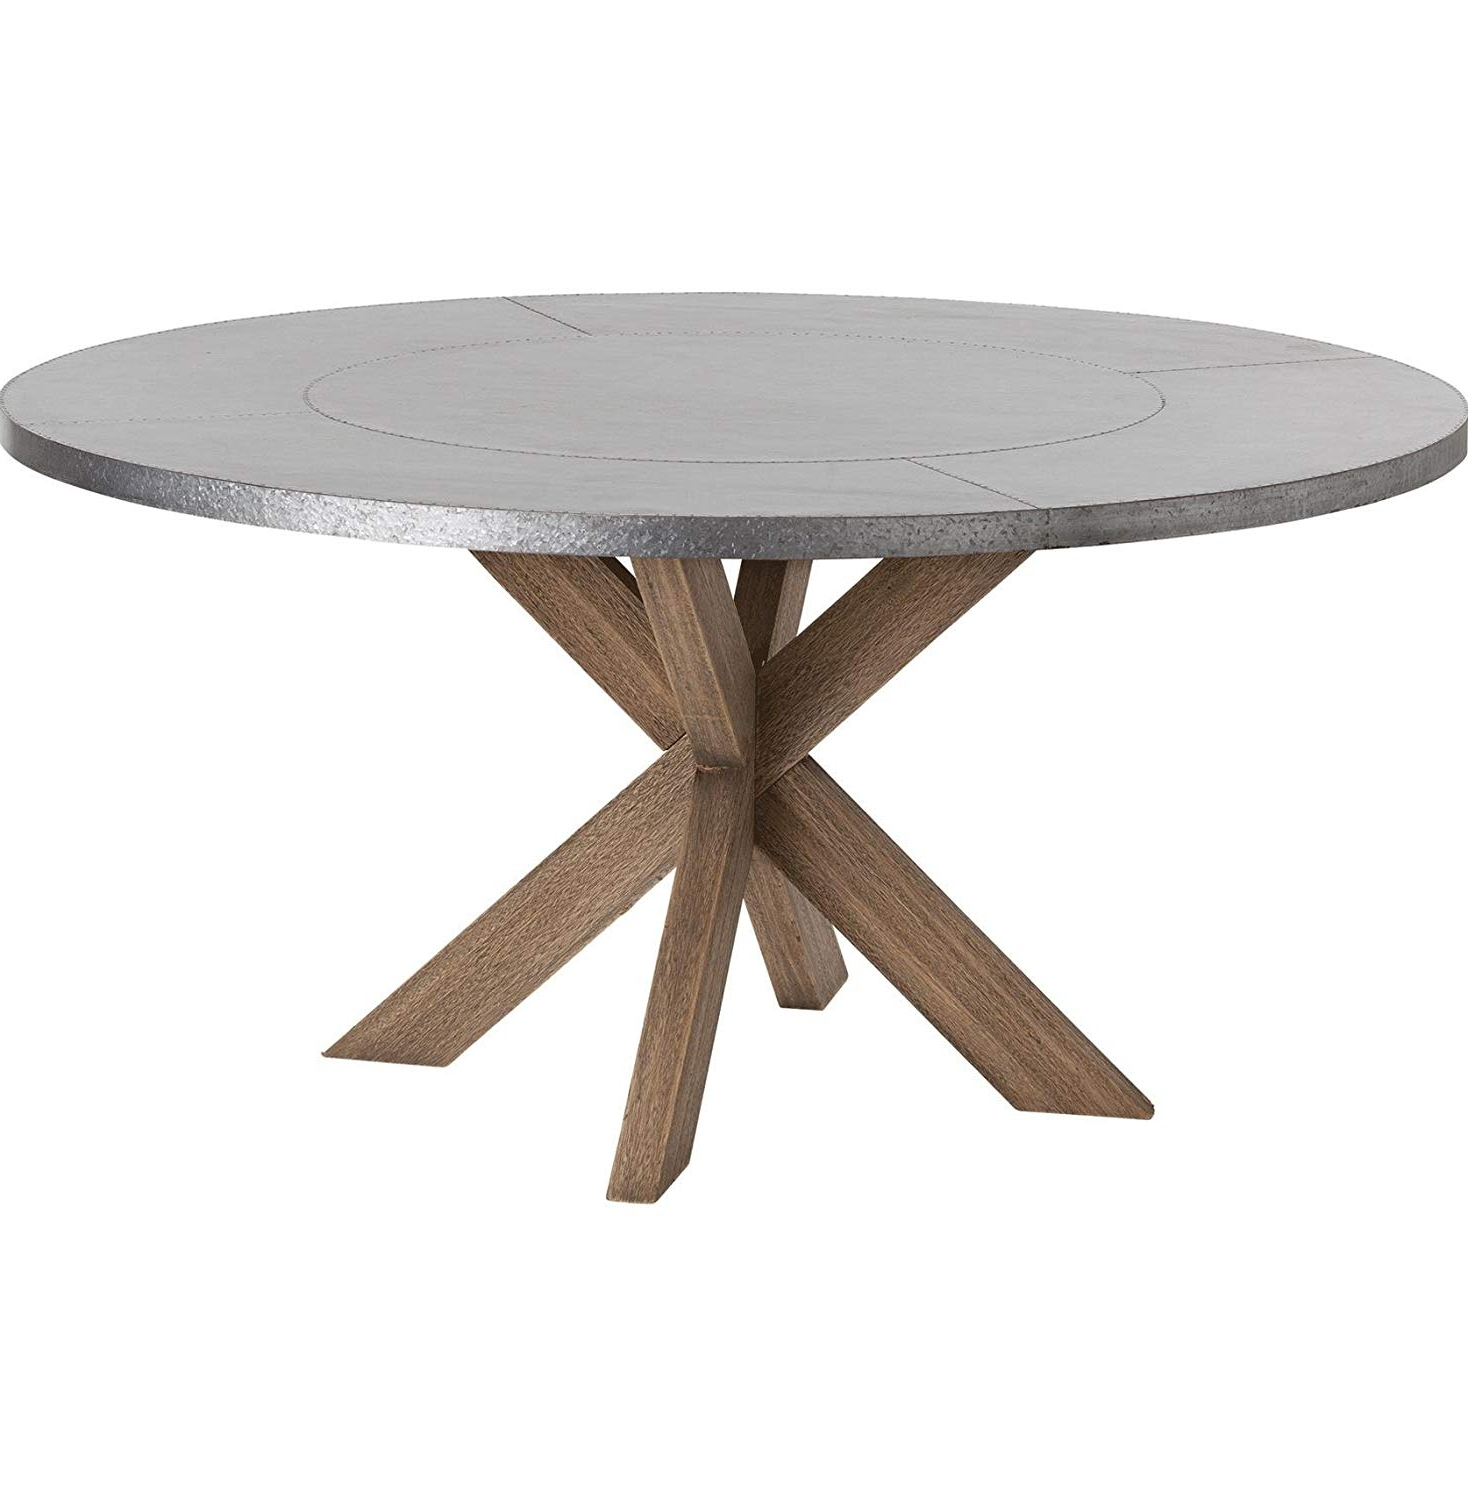 Natural Wood & Recycled Elm 87 Inch Dining Tables Regarding Most Popular Amazon – Kathy Kuo Home Halton Industrial Loft Galvanized Iron (View 25 of 25)